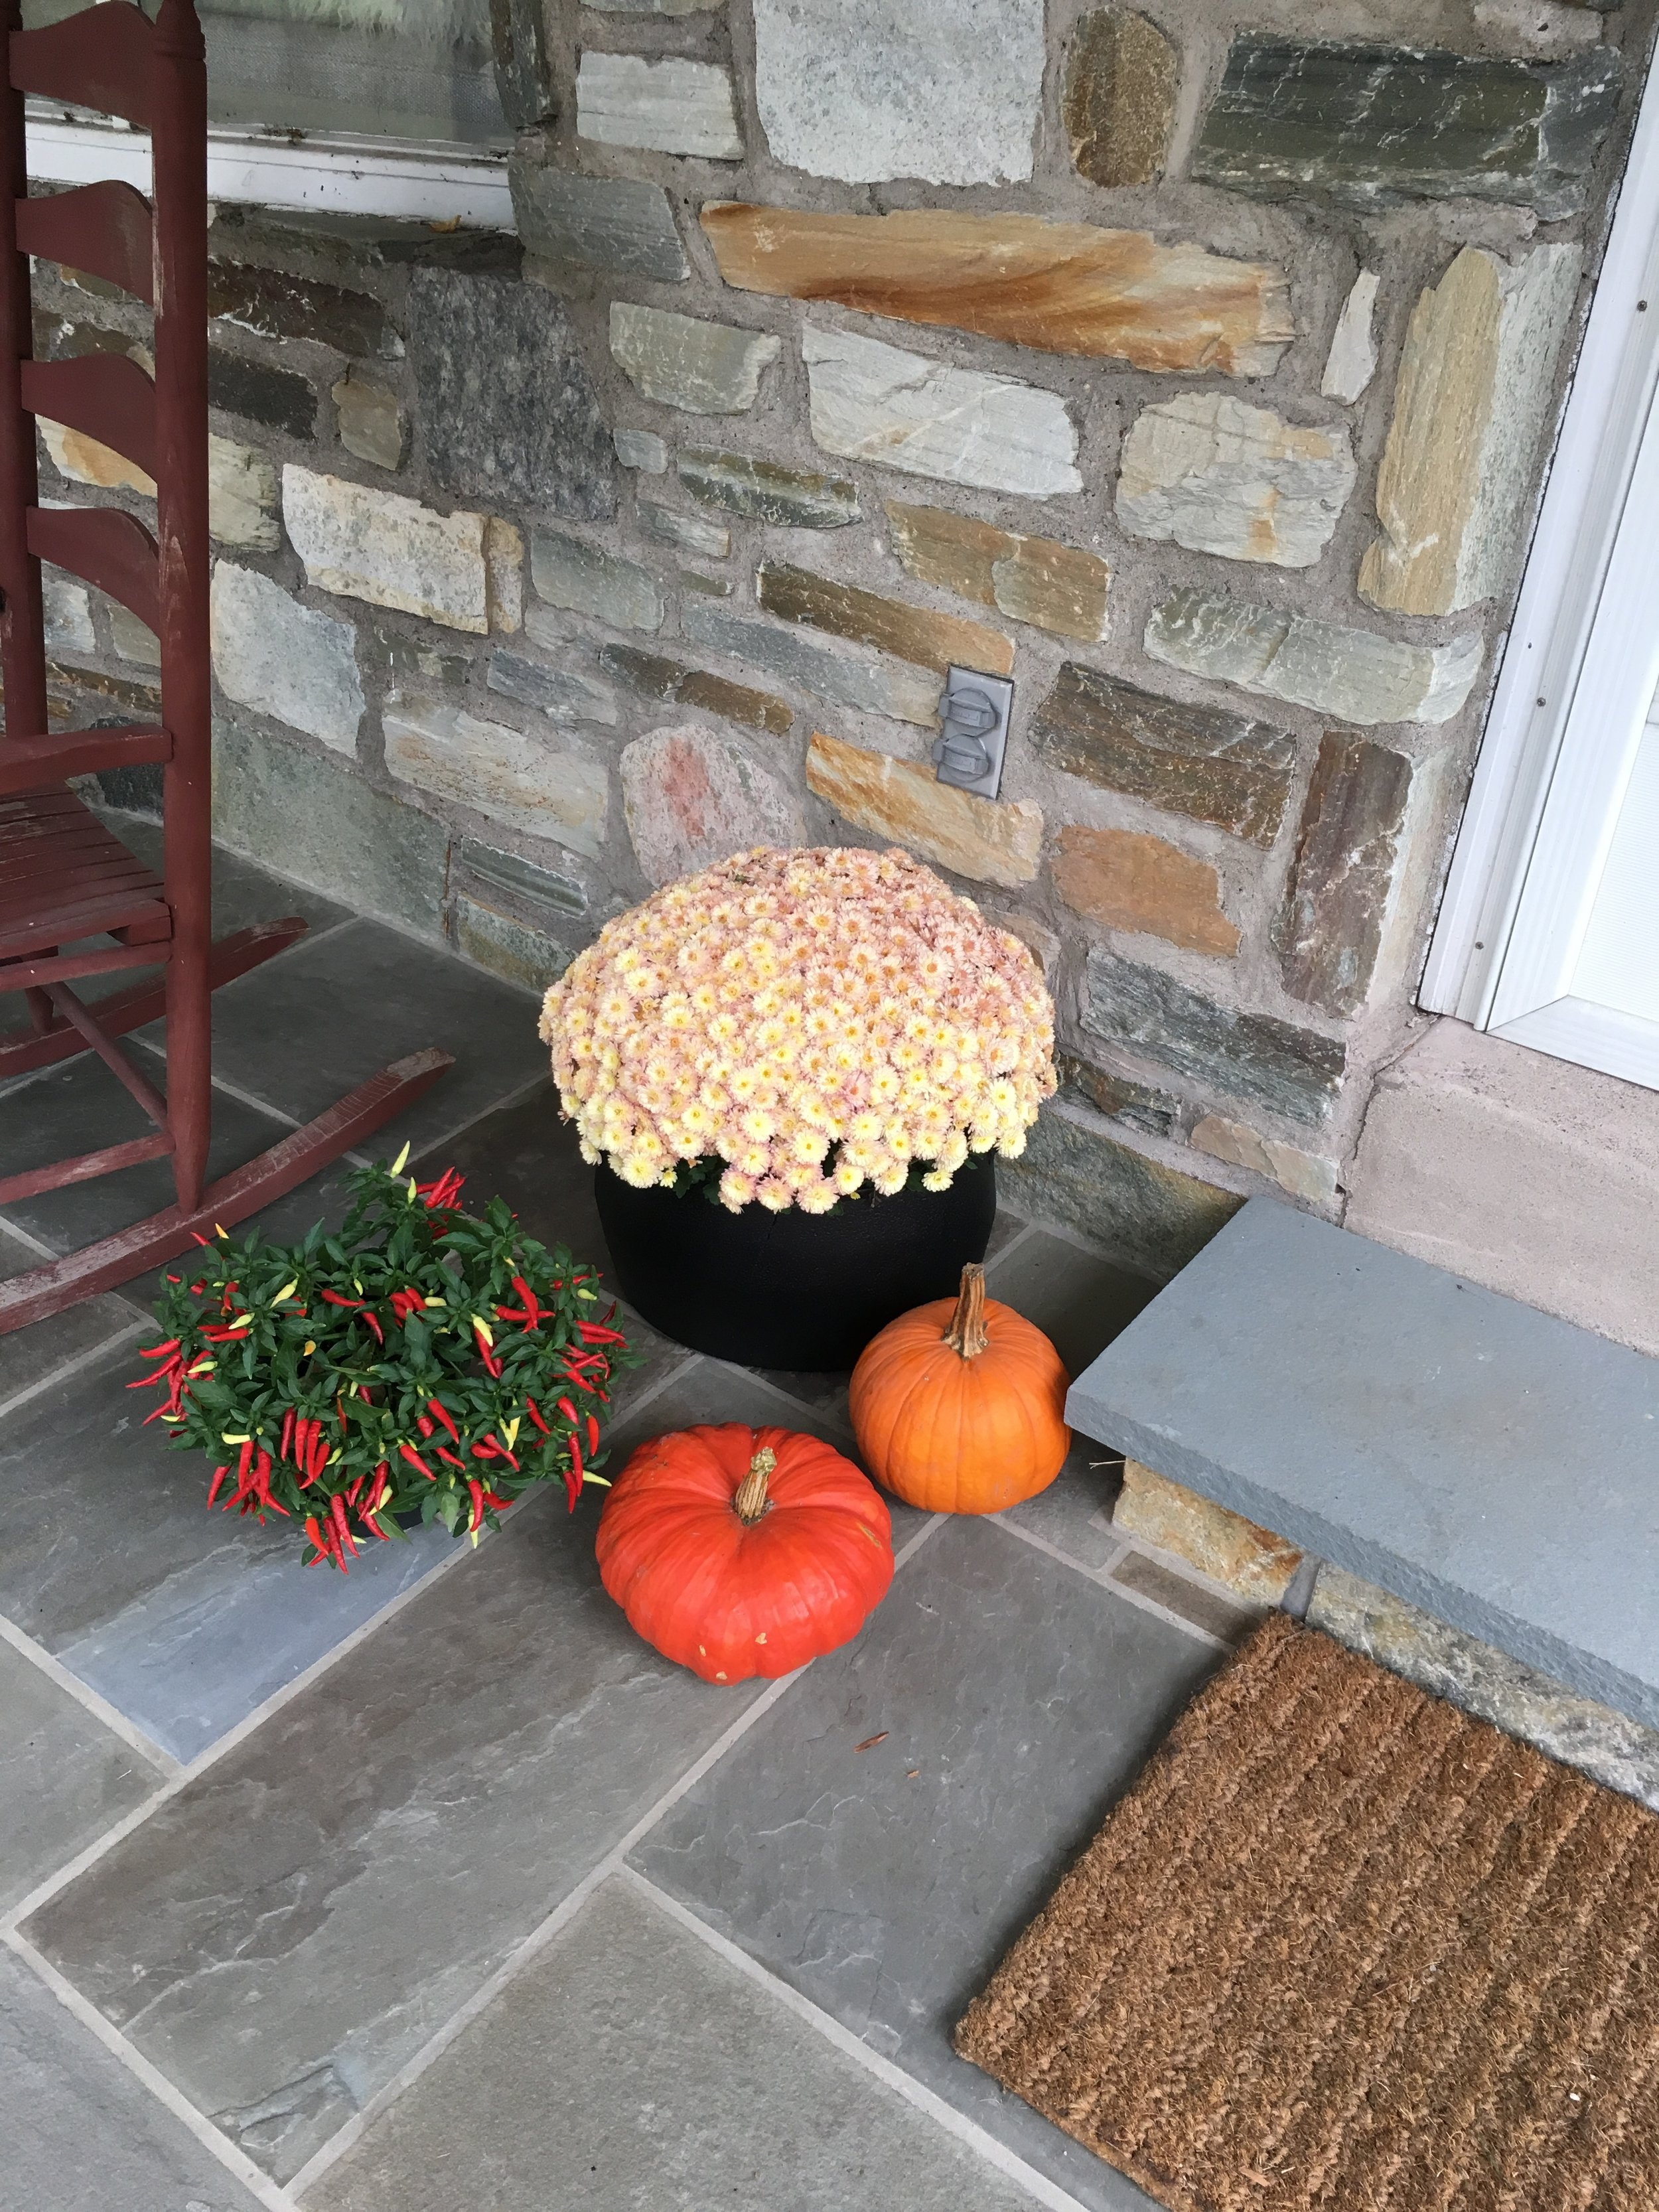 Christening the bluestone porch with the first of many pumpkins!